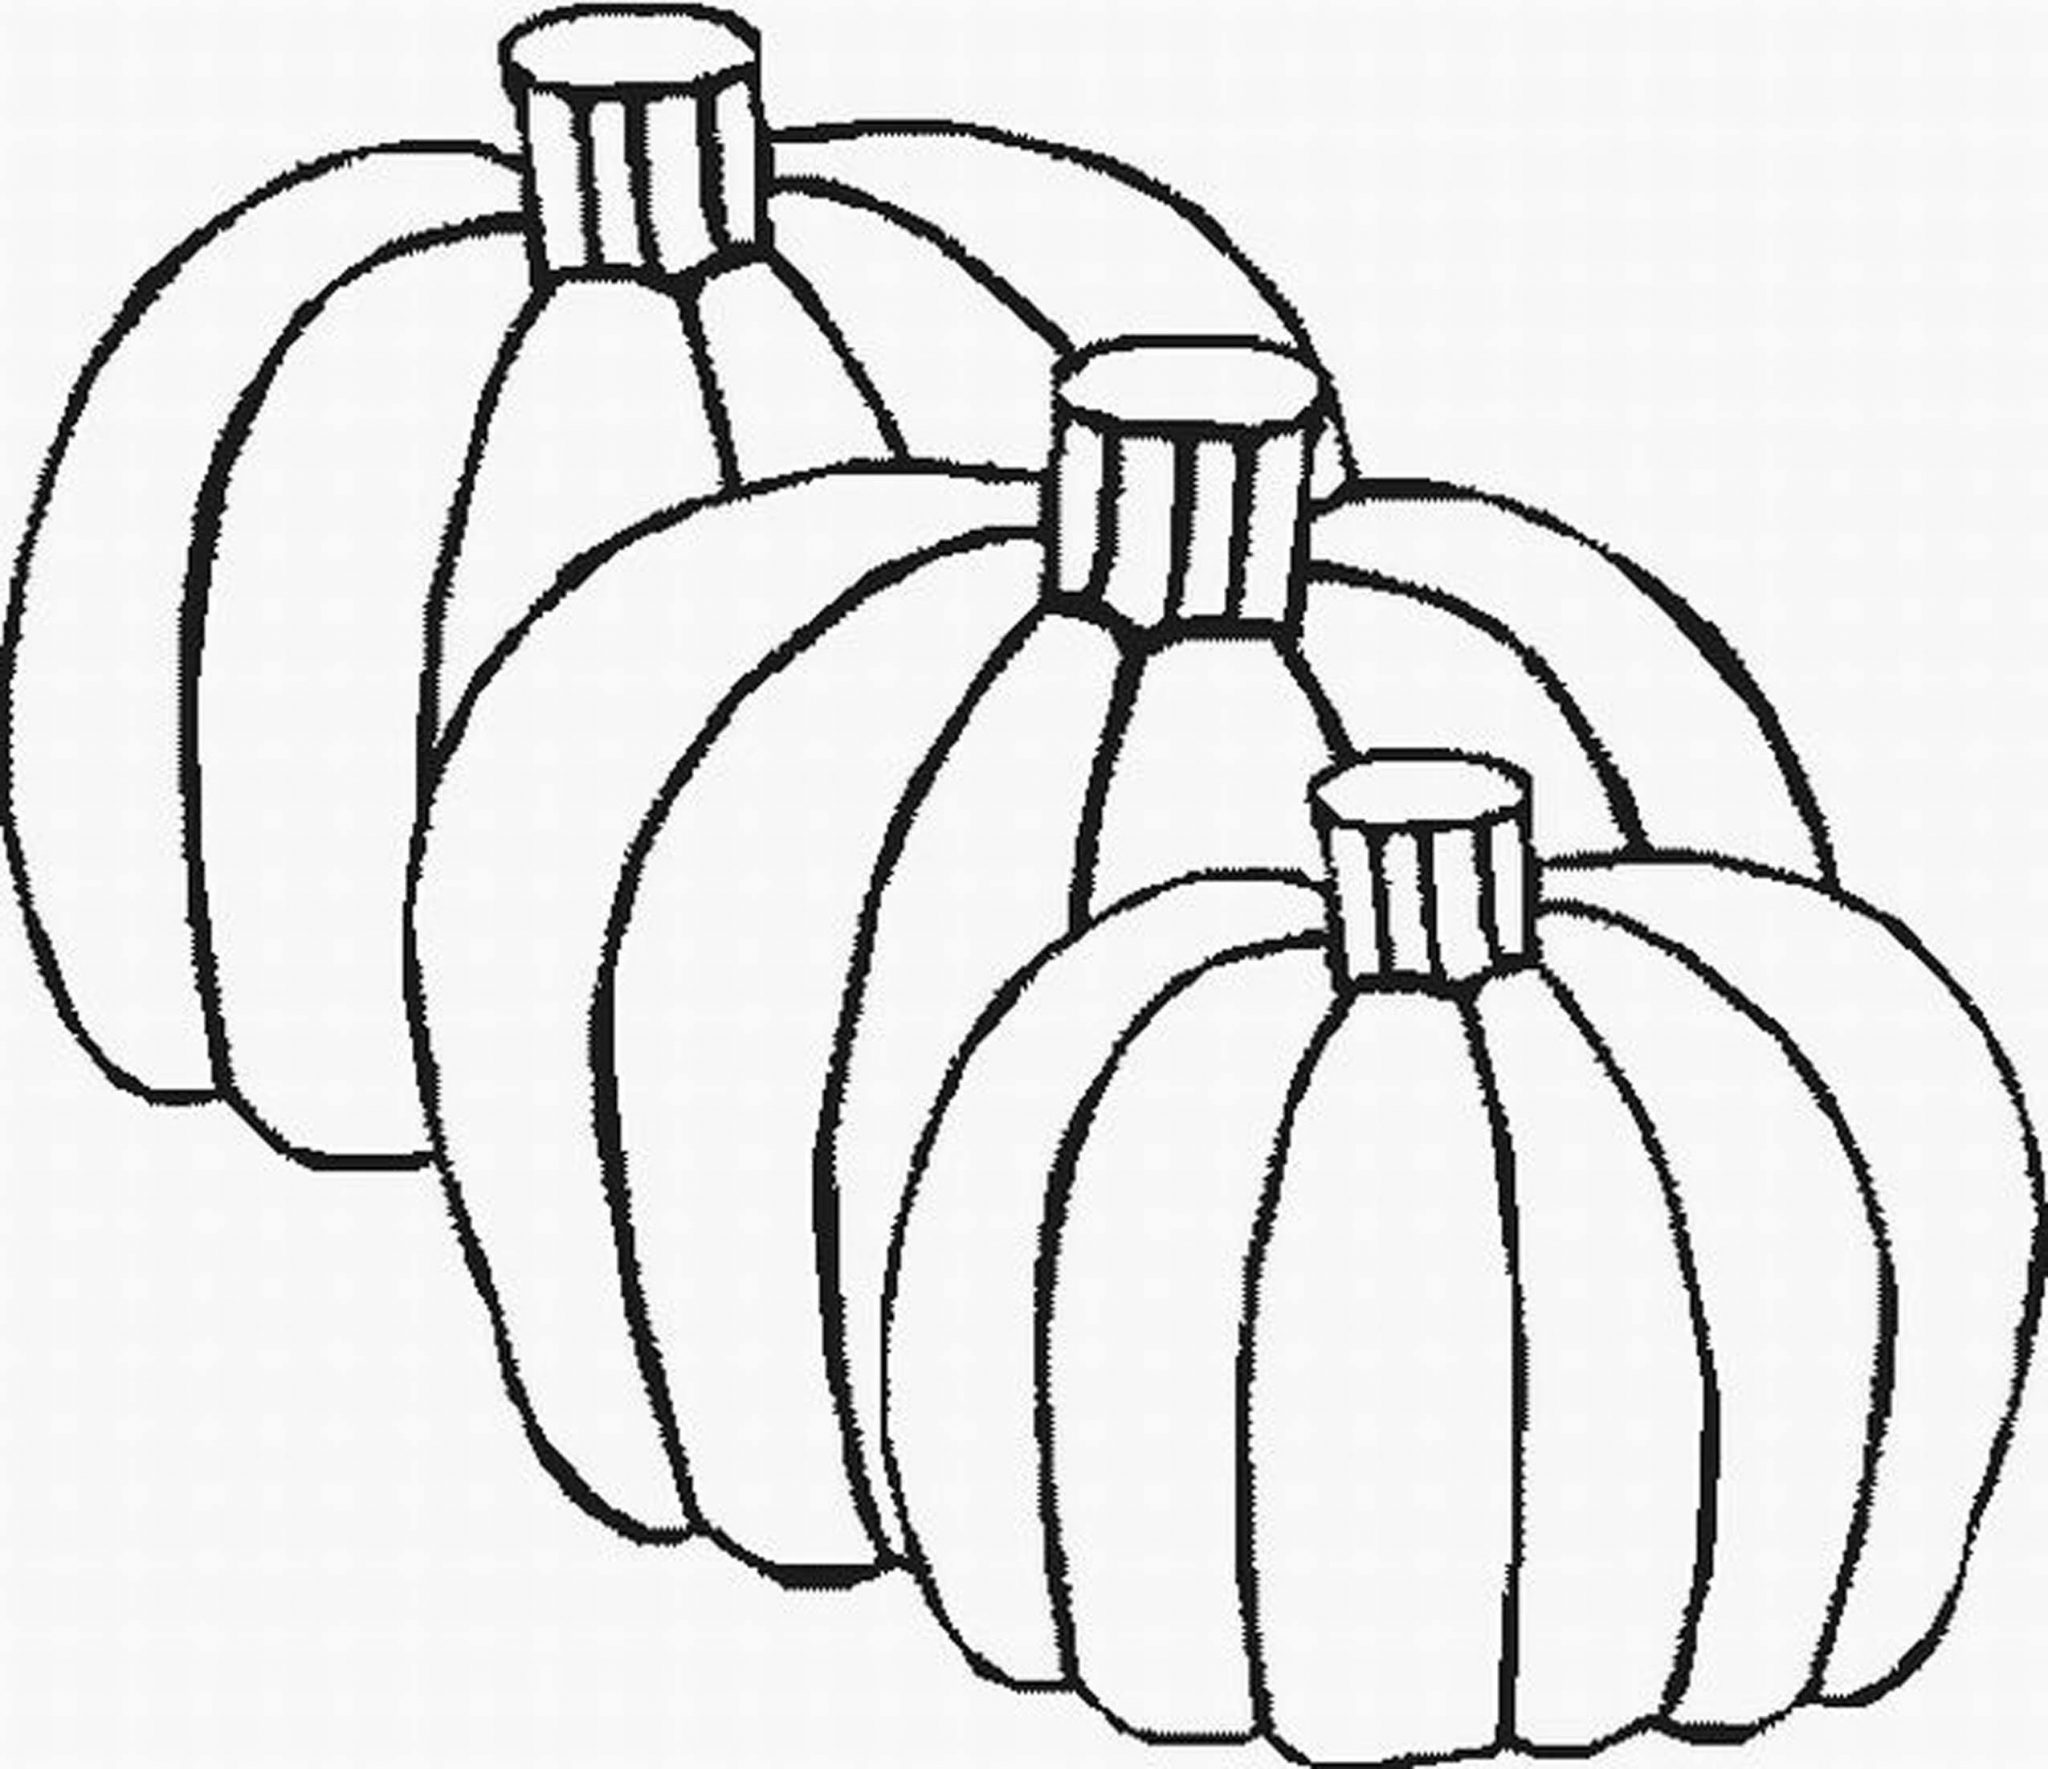 free coloring pages of pumpkins pumpkin coloring pages collections 2011 coloring pumpkins free pages of